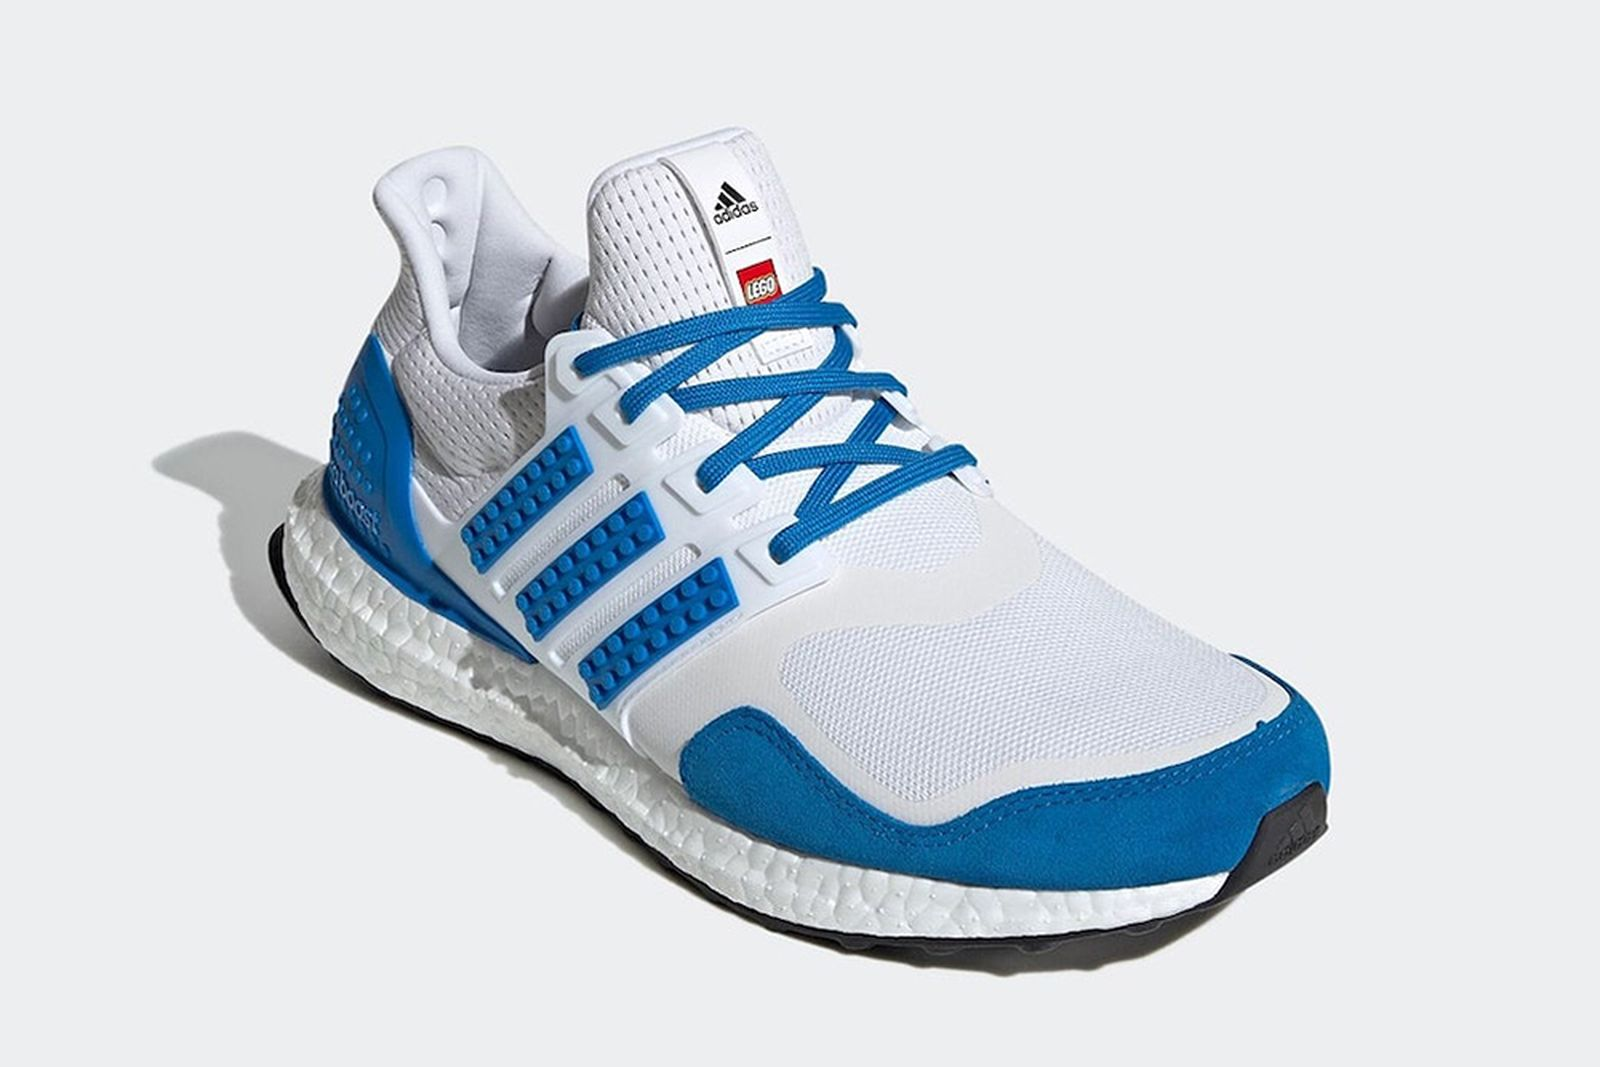 lego-adidas-ultraboost-color-pack-release-date-price-06